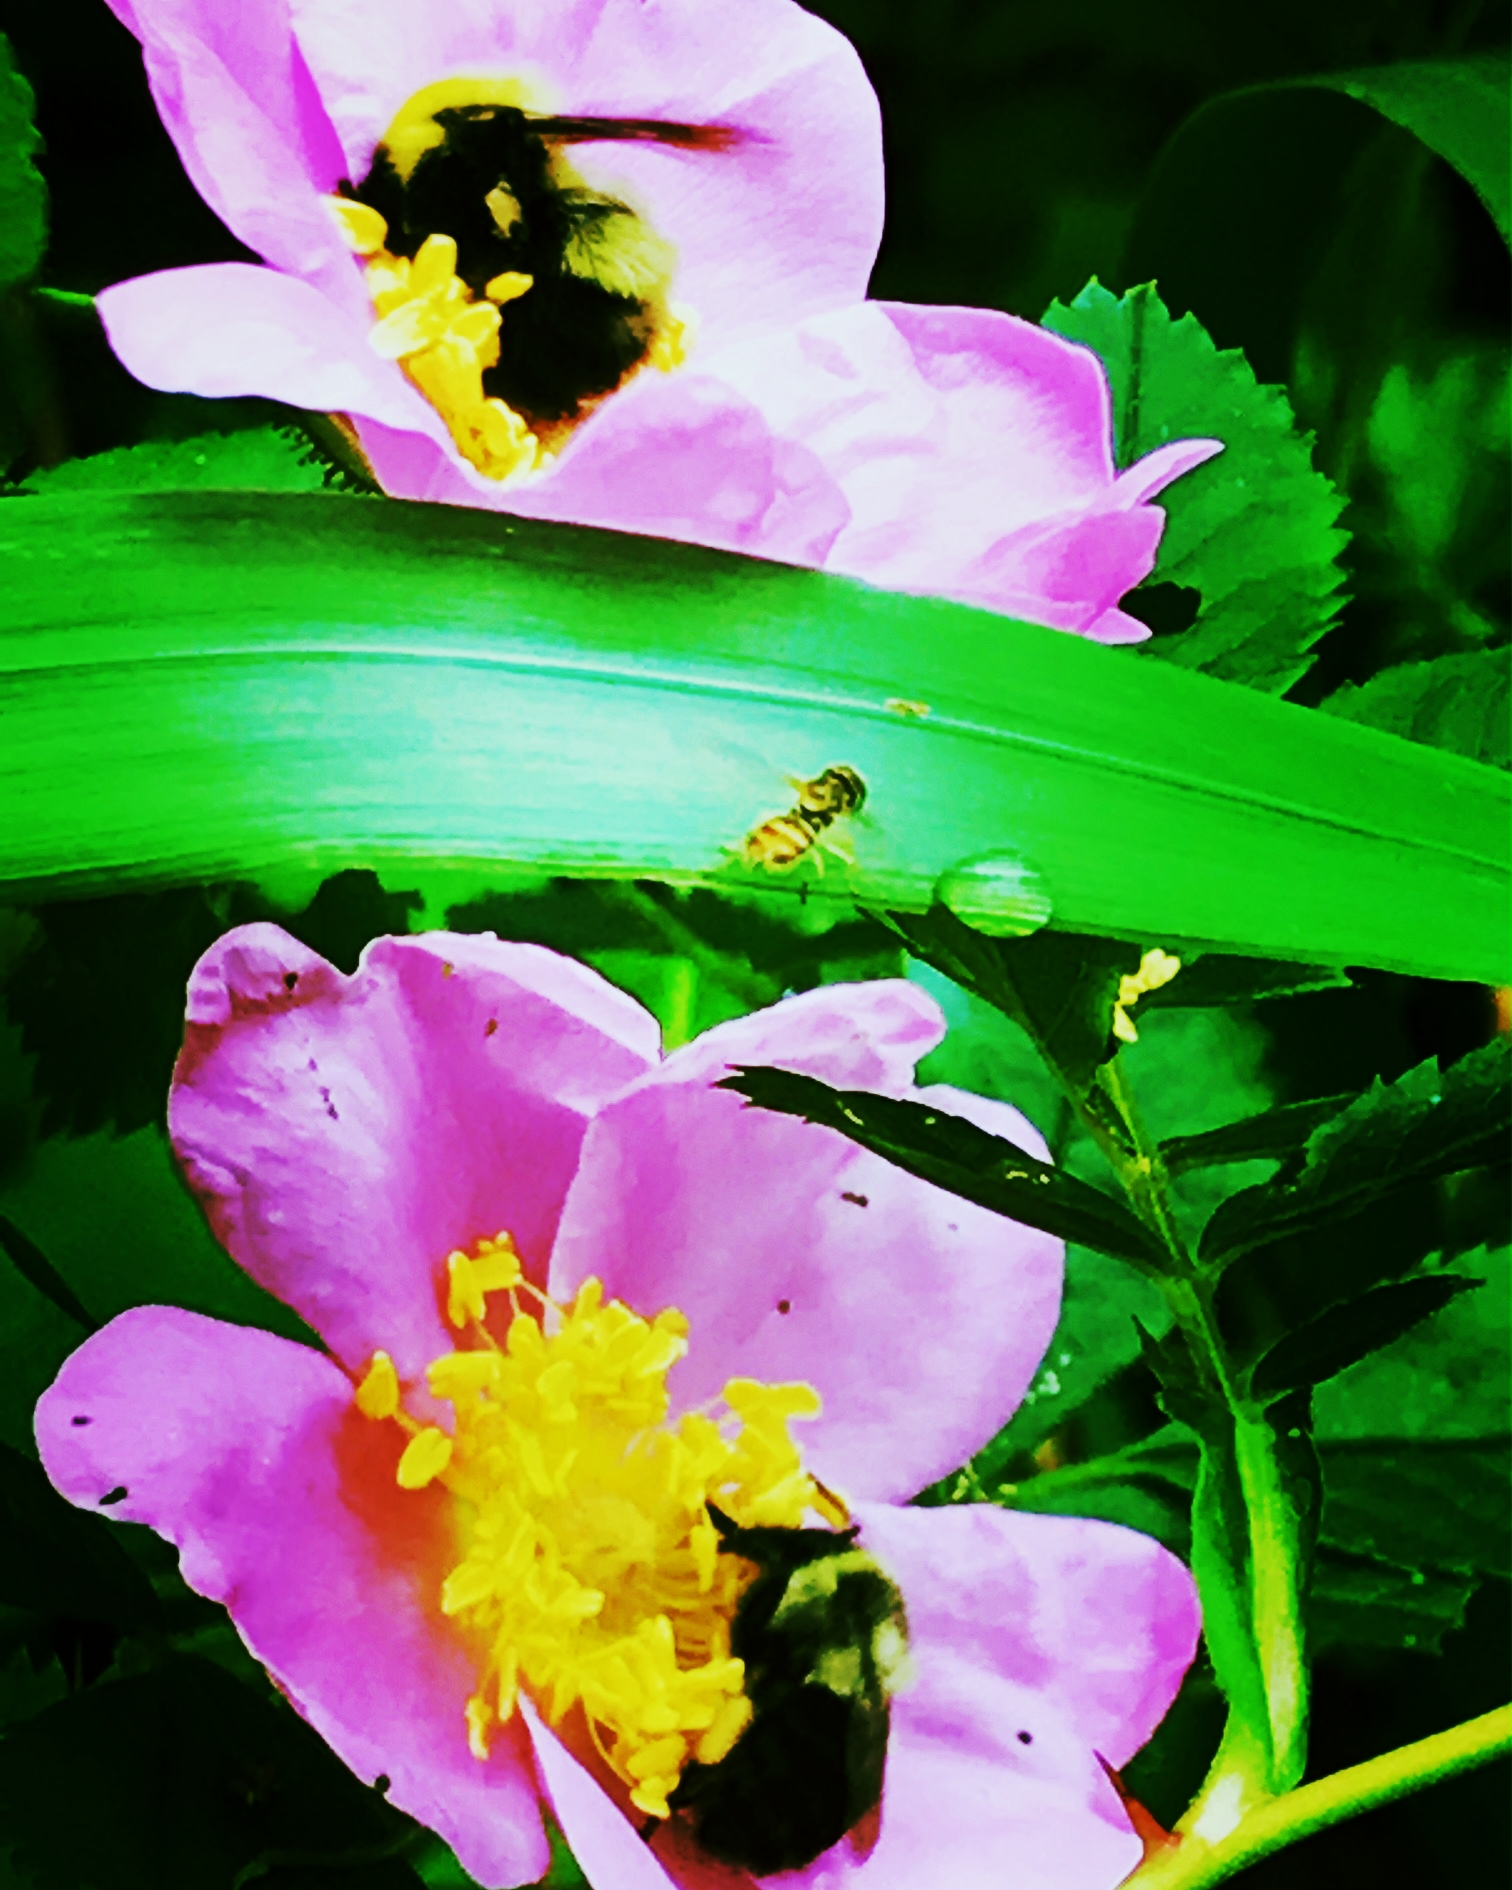 Three Bees in the Roses